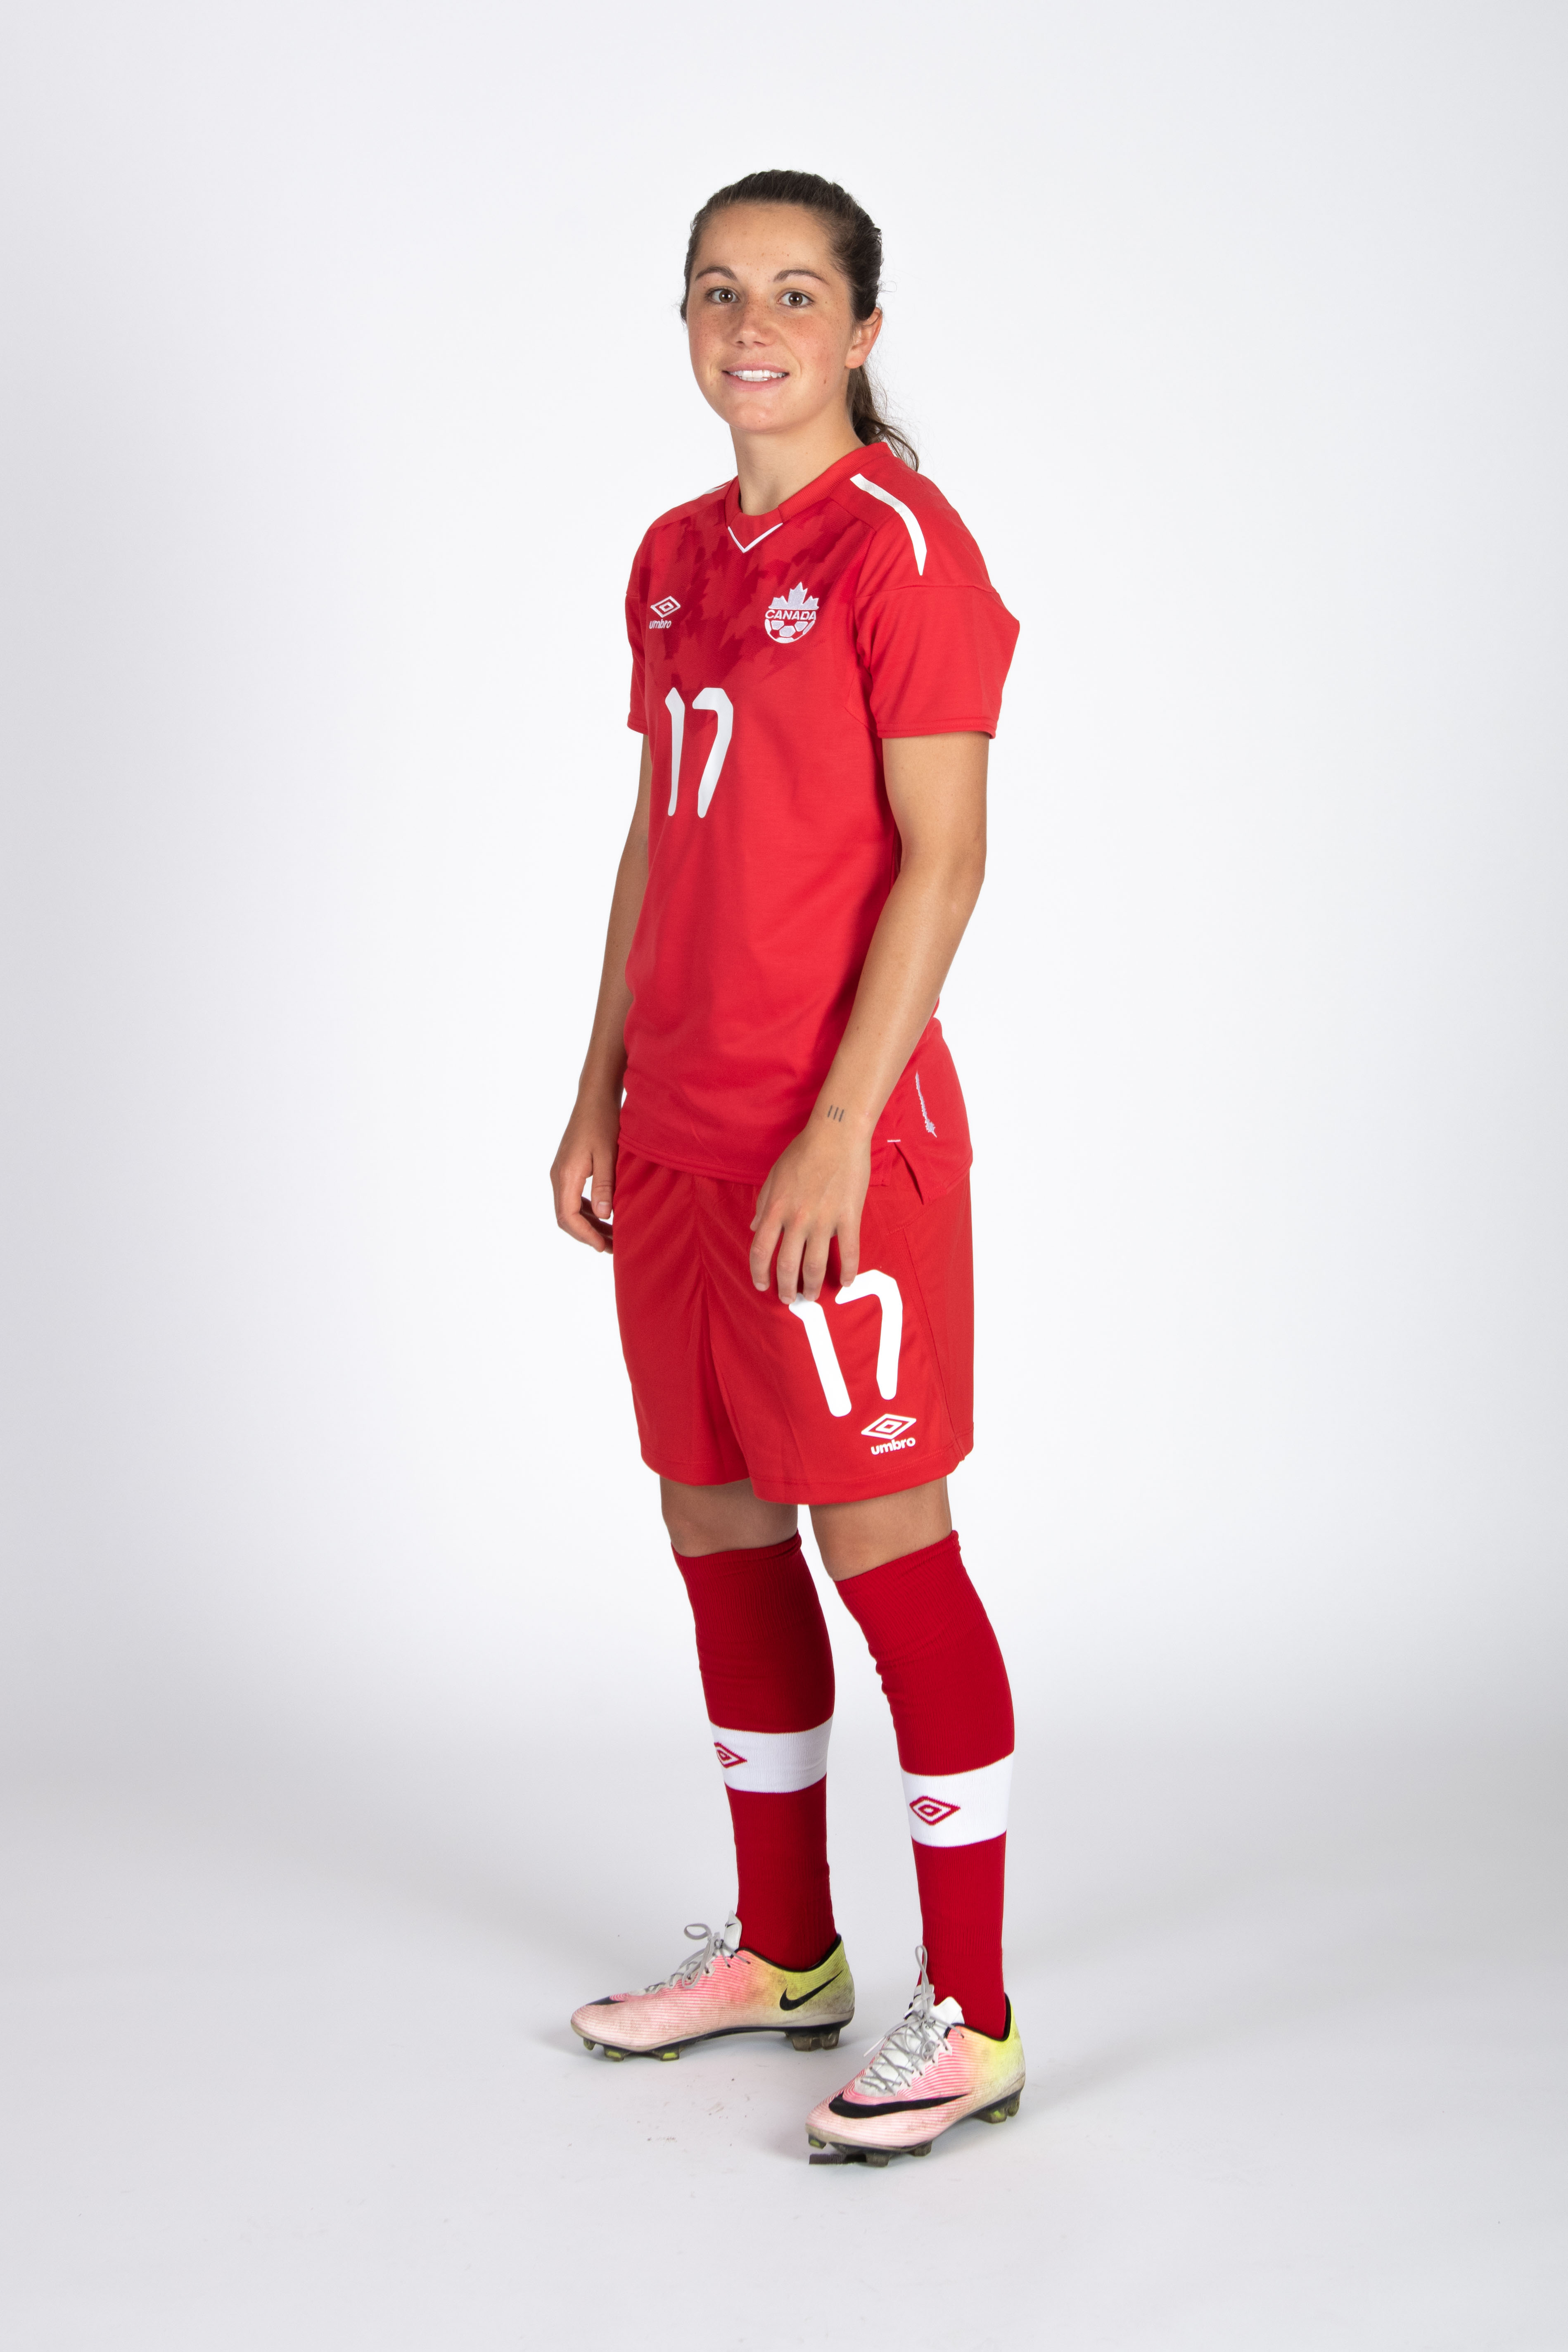 20180604_CANWNT_Fleming_byBazyl23